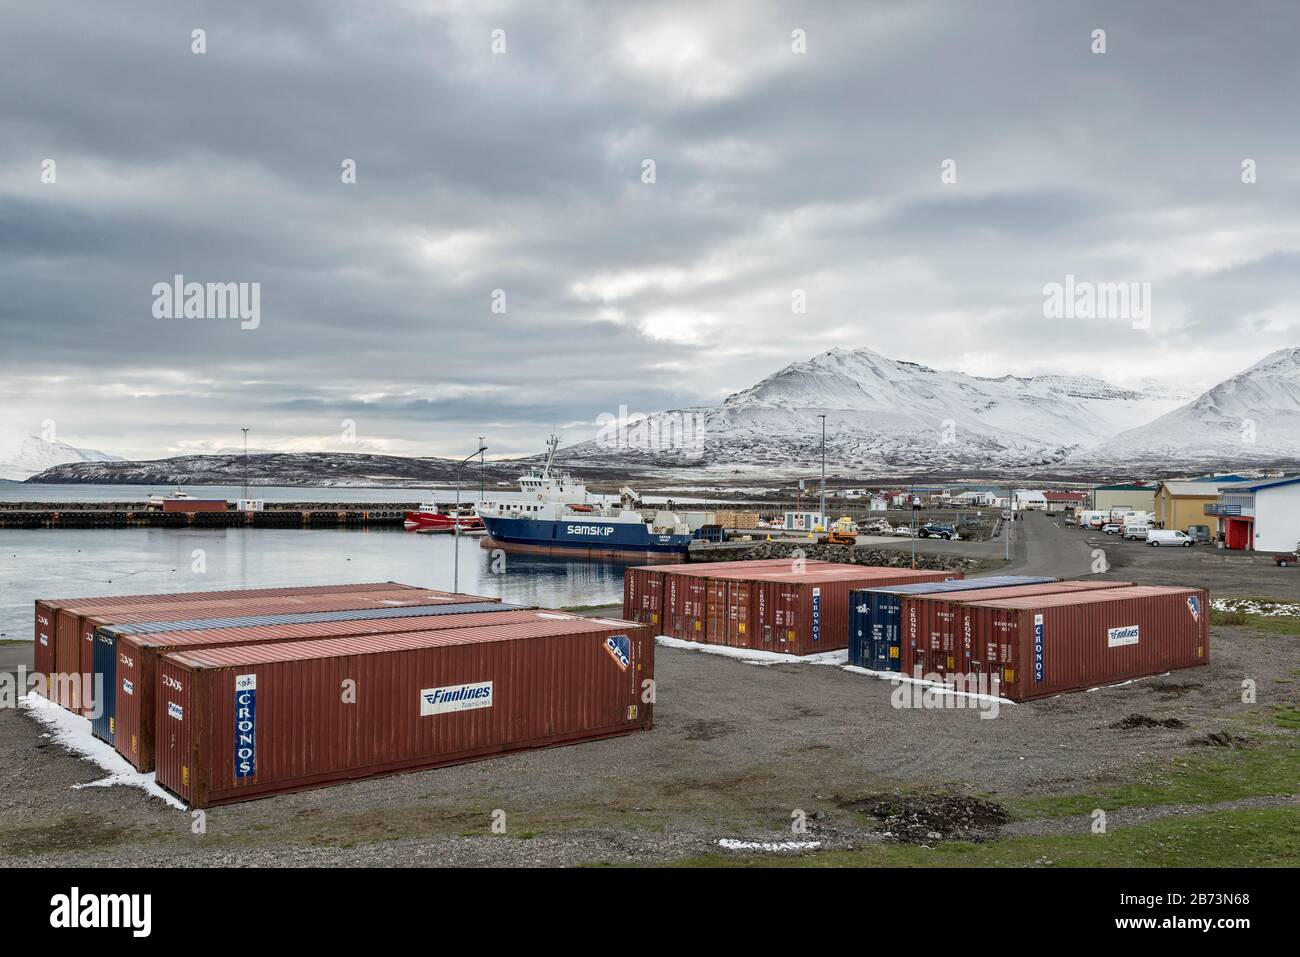 Shipping containers in the little port of Ólafsfjörður in north-east Iceland Stock Photo